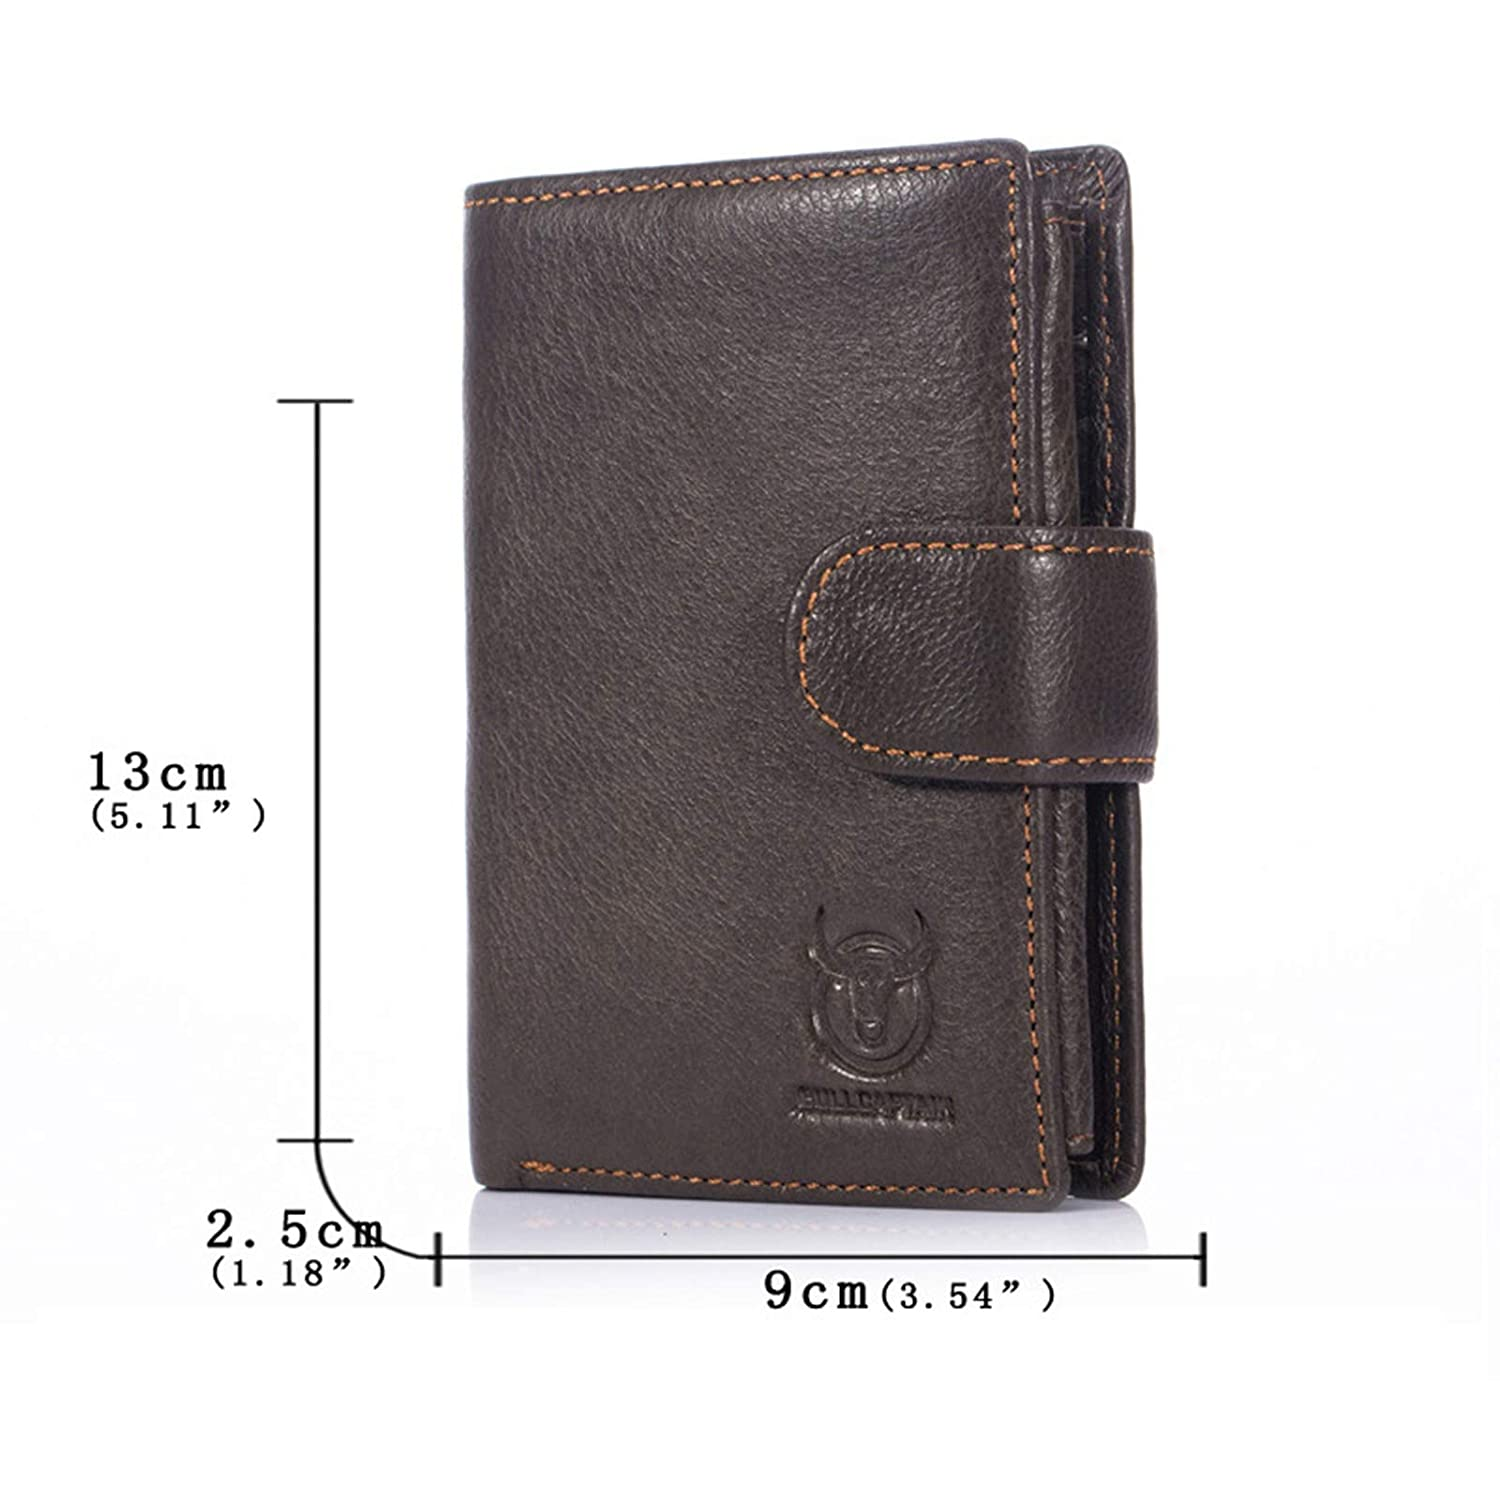 Adisaer-Leather Wallets for Men Brown Snap Button Credit Card Holder Trifold